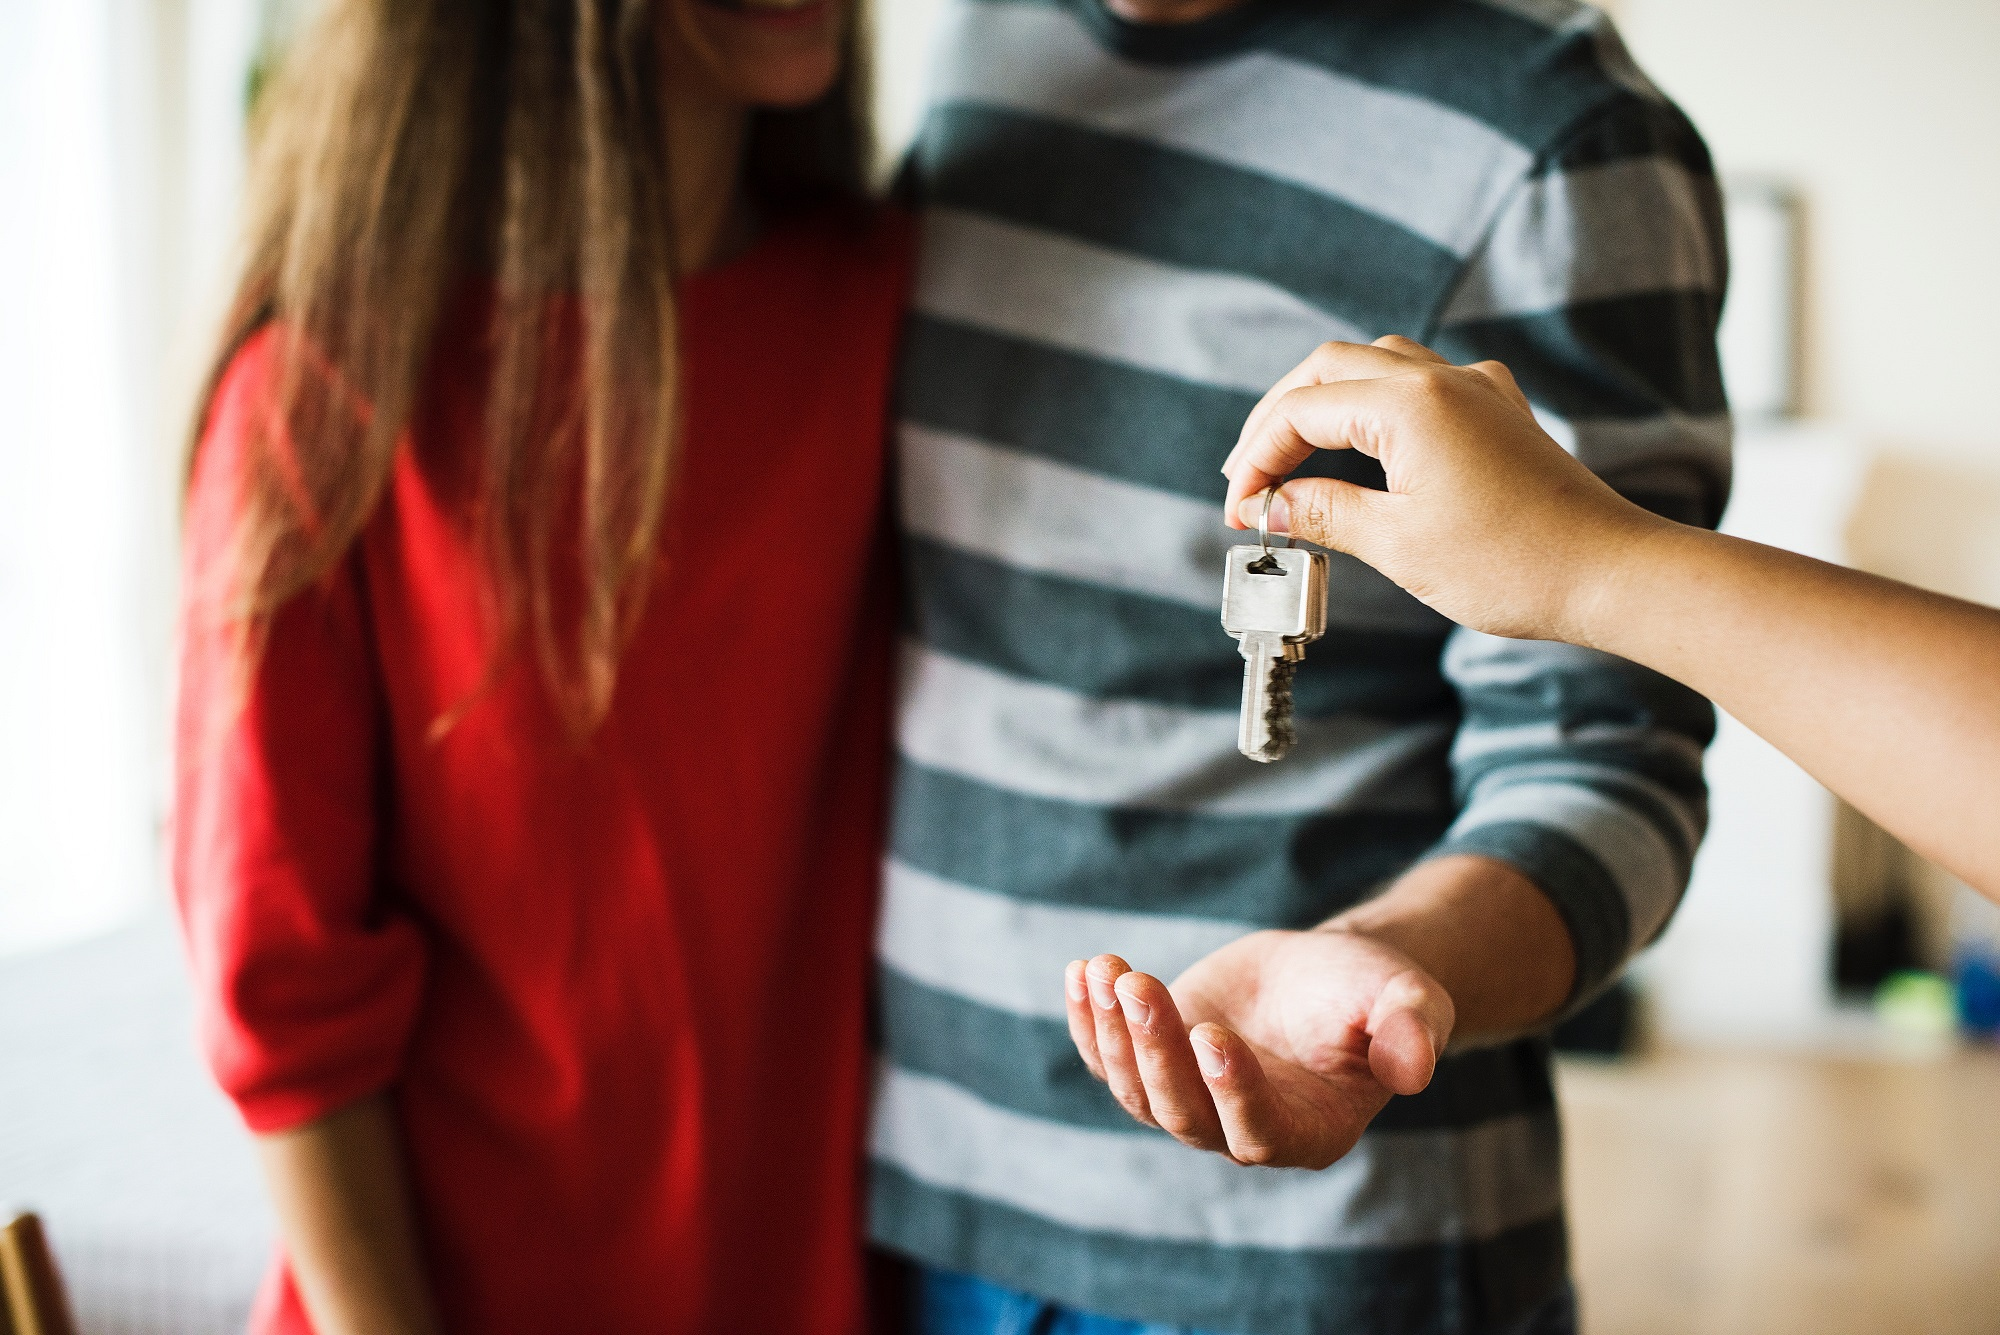 Searching for a new home? 9 great tips for buyers